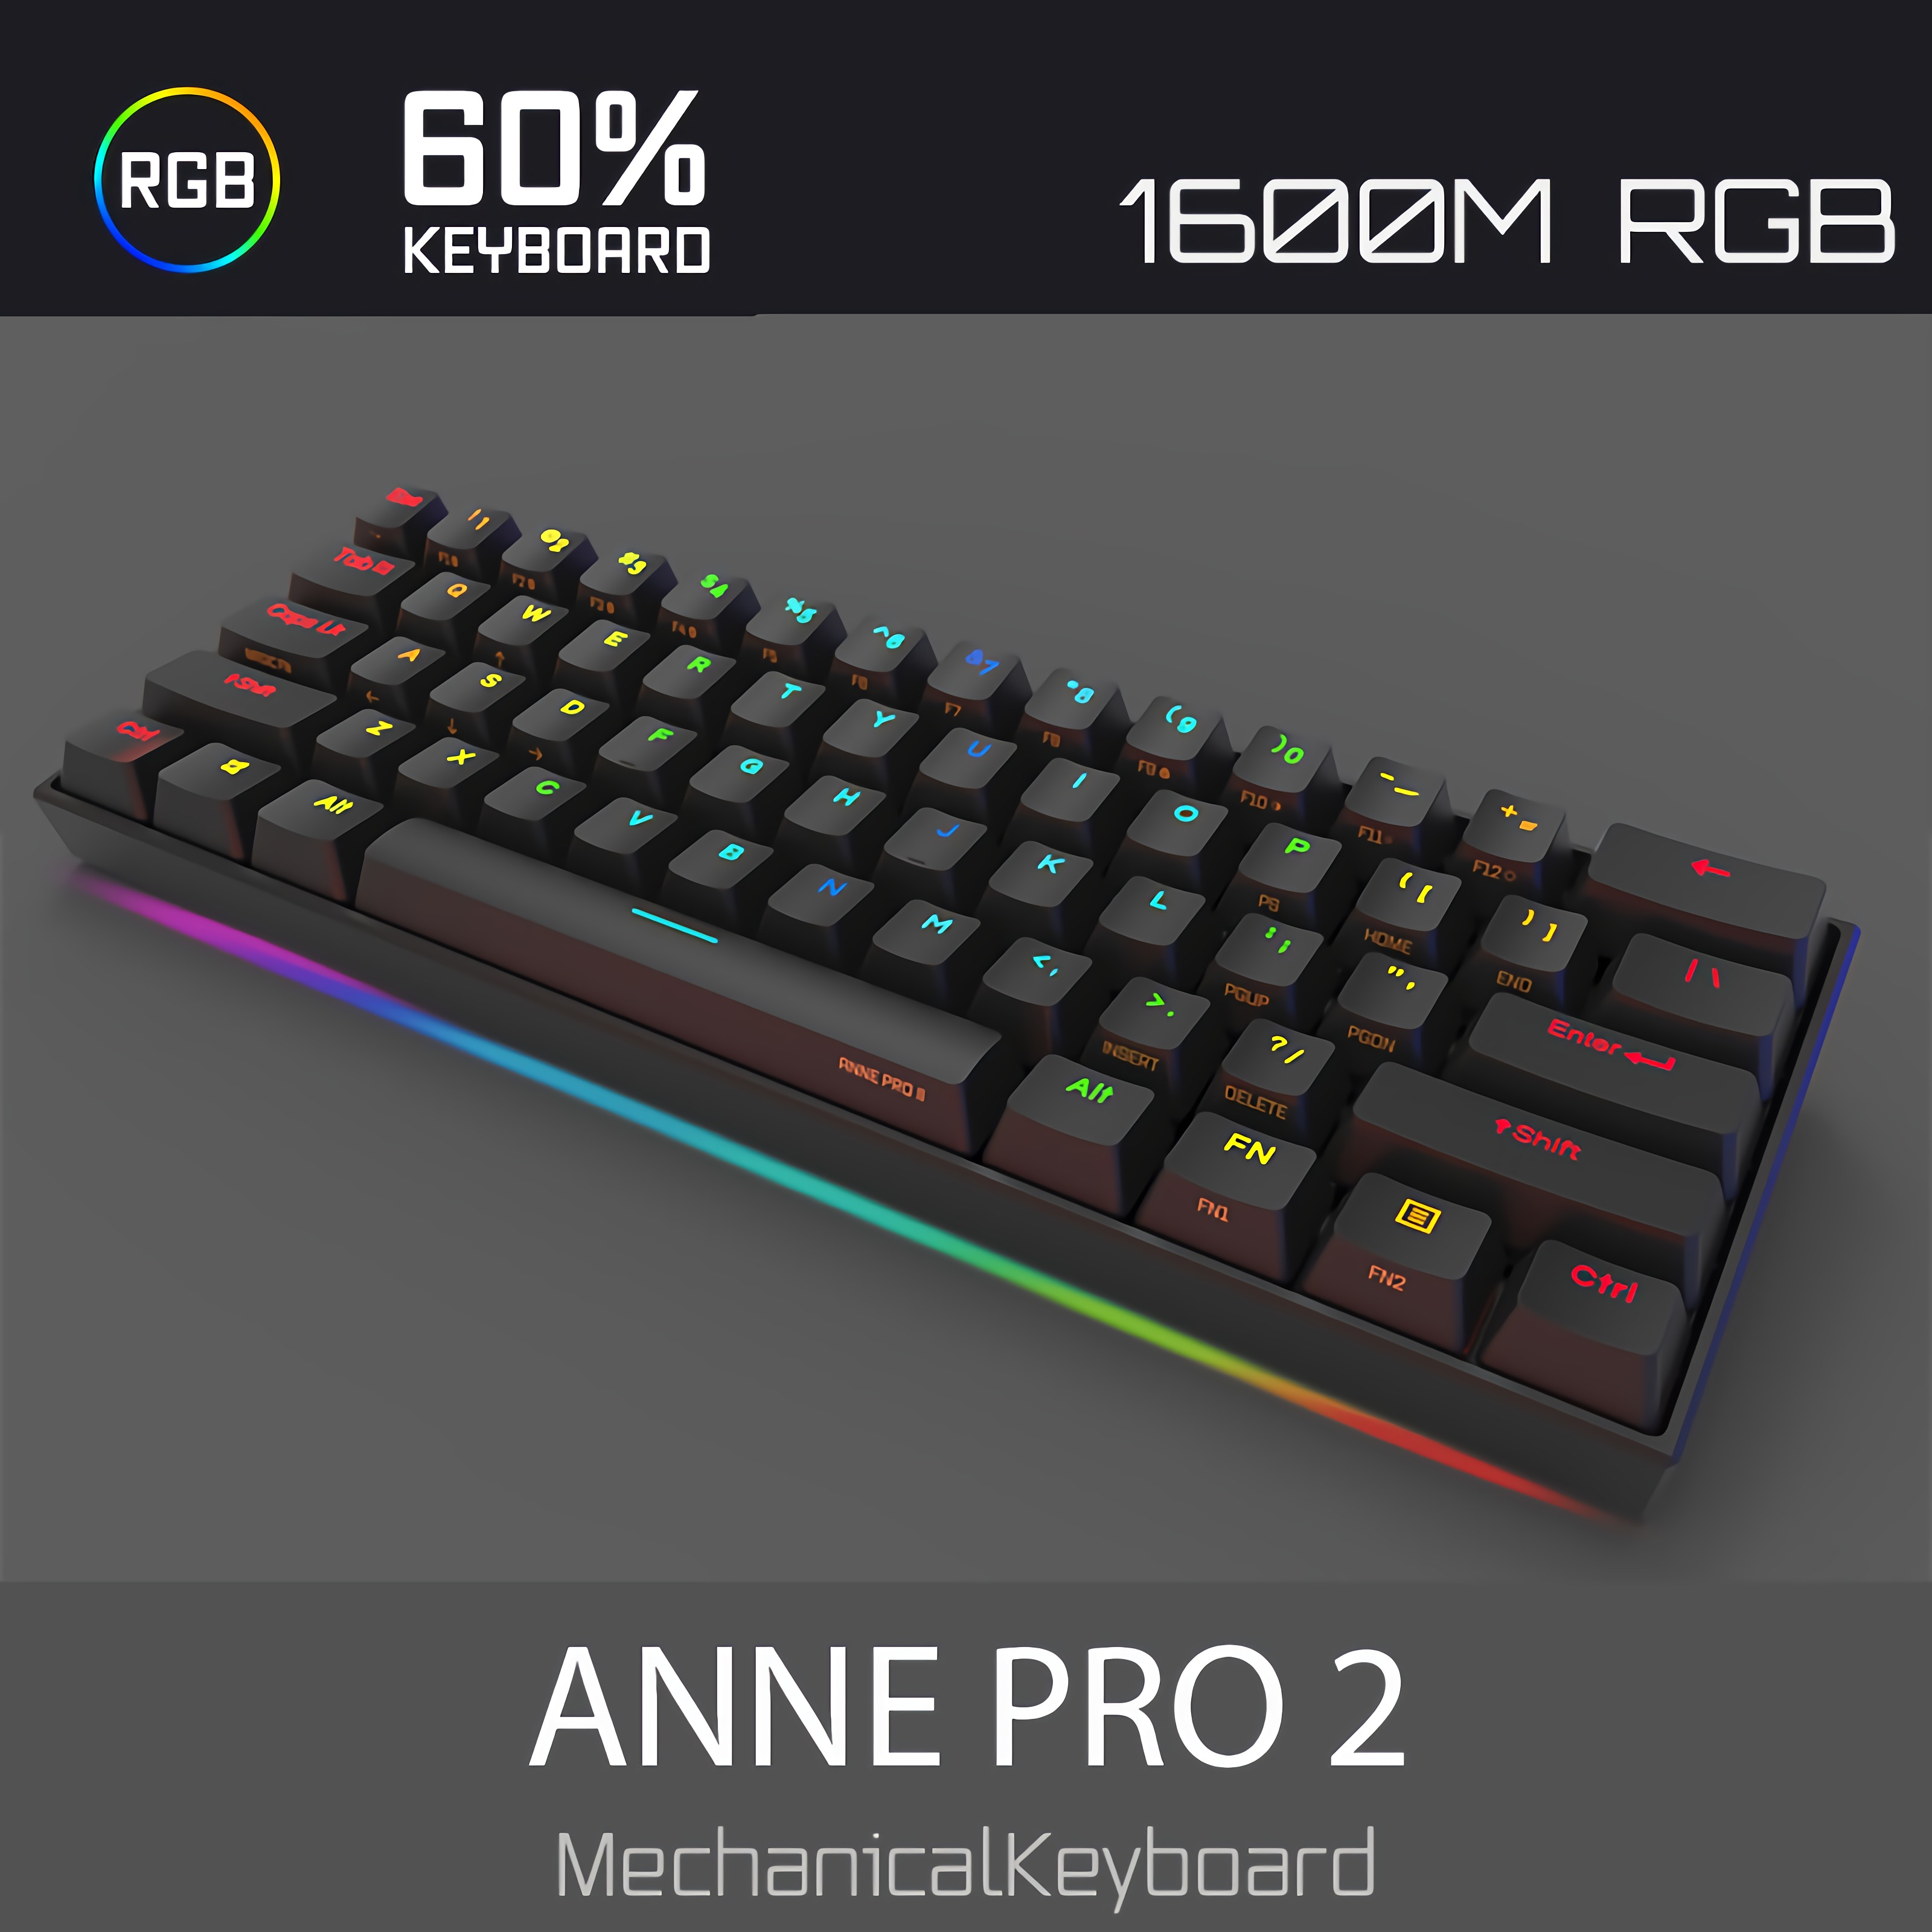 ANNE PRO 2 Cherry MX Switch, 60% Wired/Wireless Mechanical Keyboard - Full Keys Programmable - True RGB Backlit - Tap Arrow Keys - Double Shot PBT Keycaps - NKRO - 1900mAh Battery